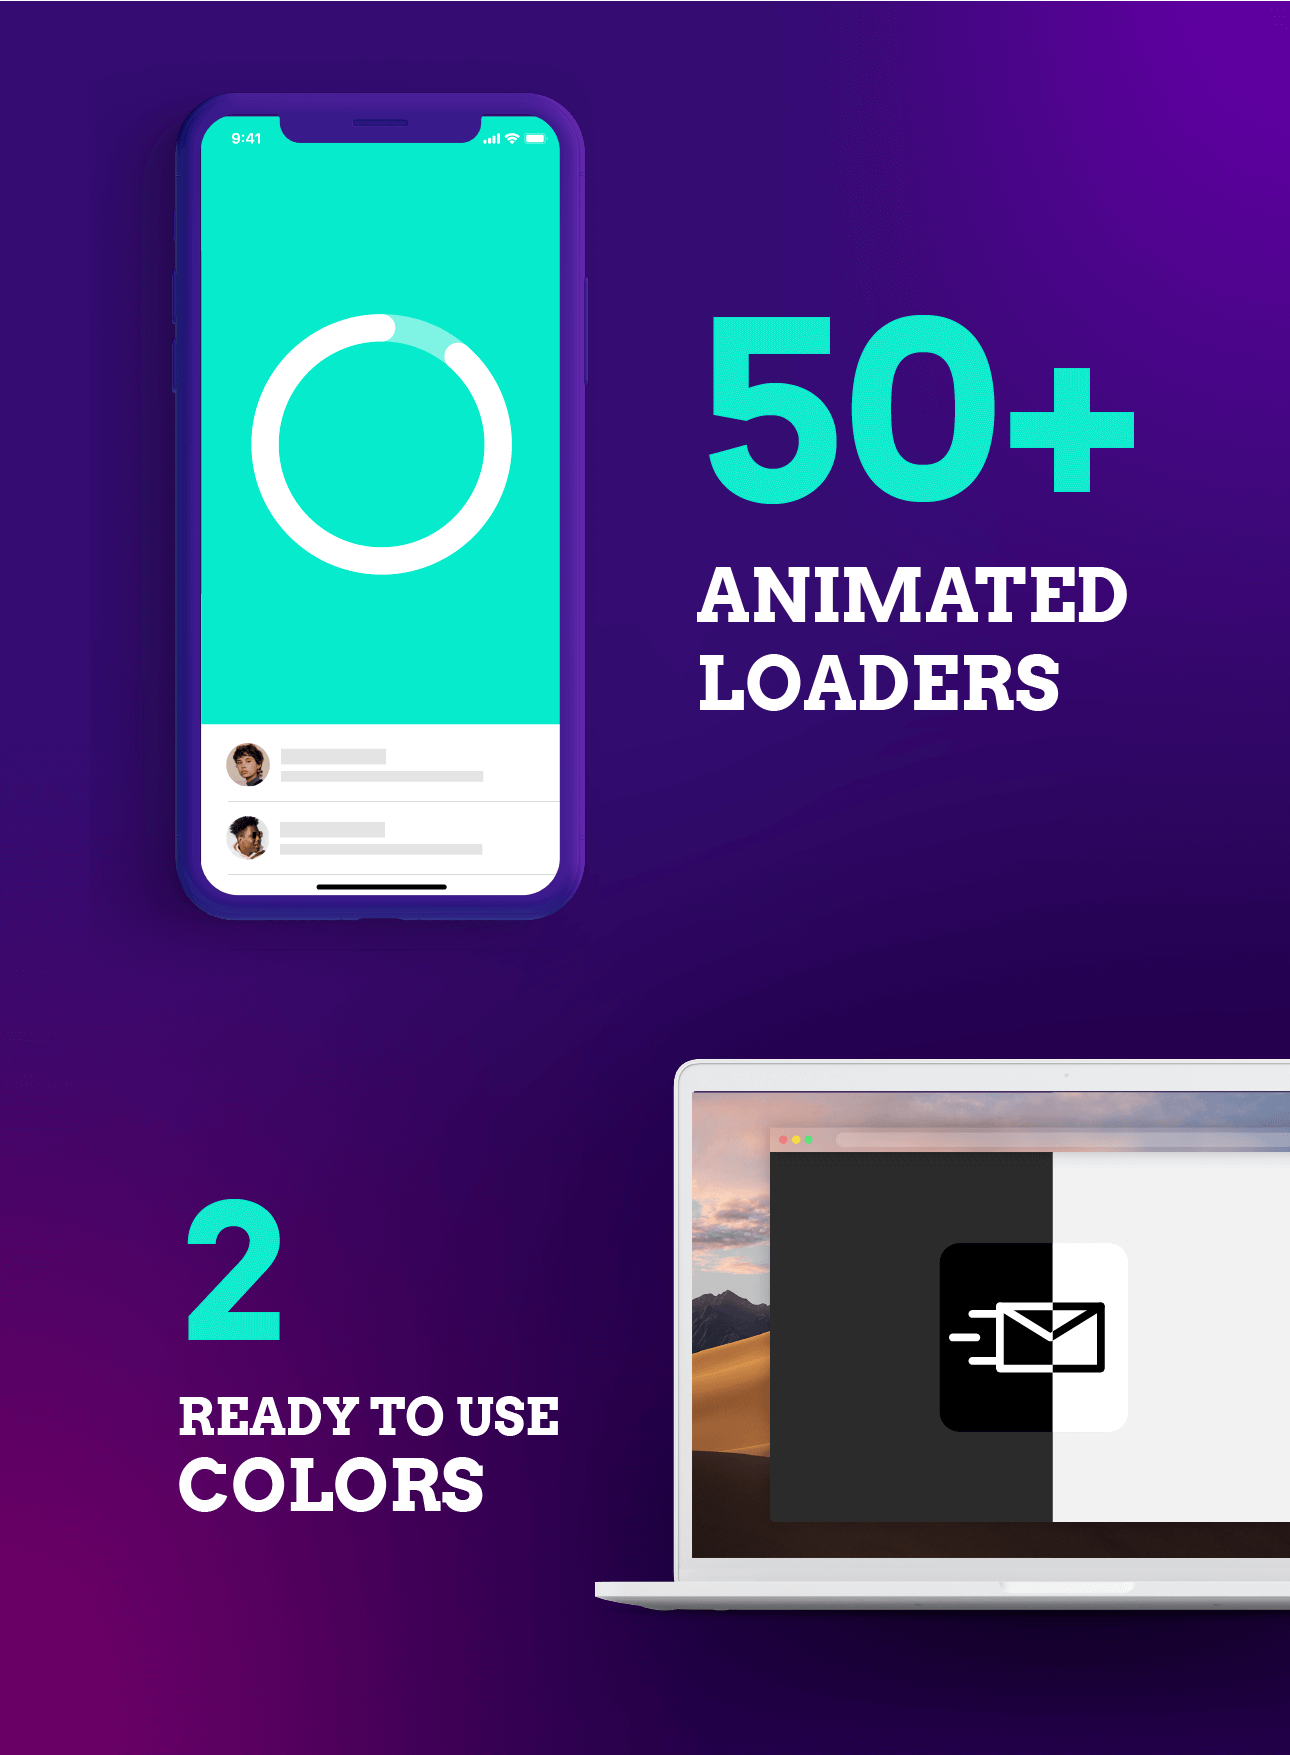 50+ Animated Loaders